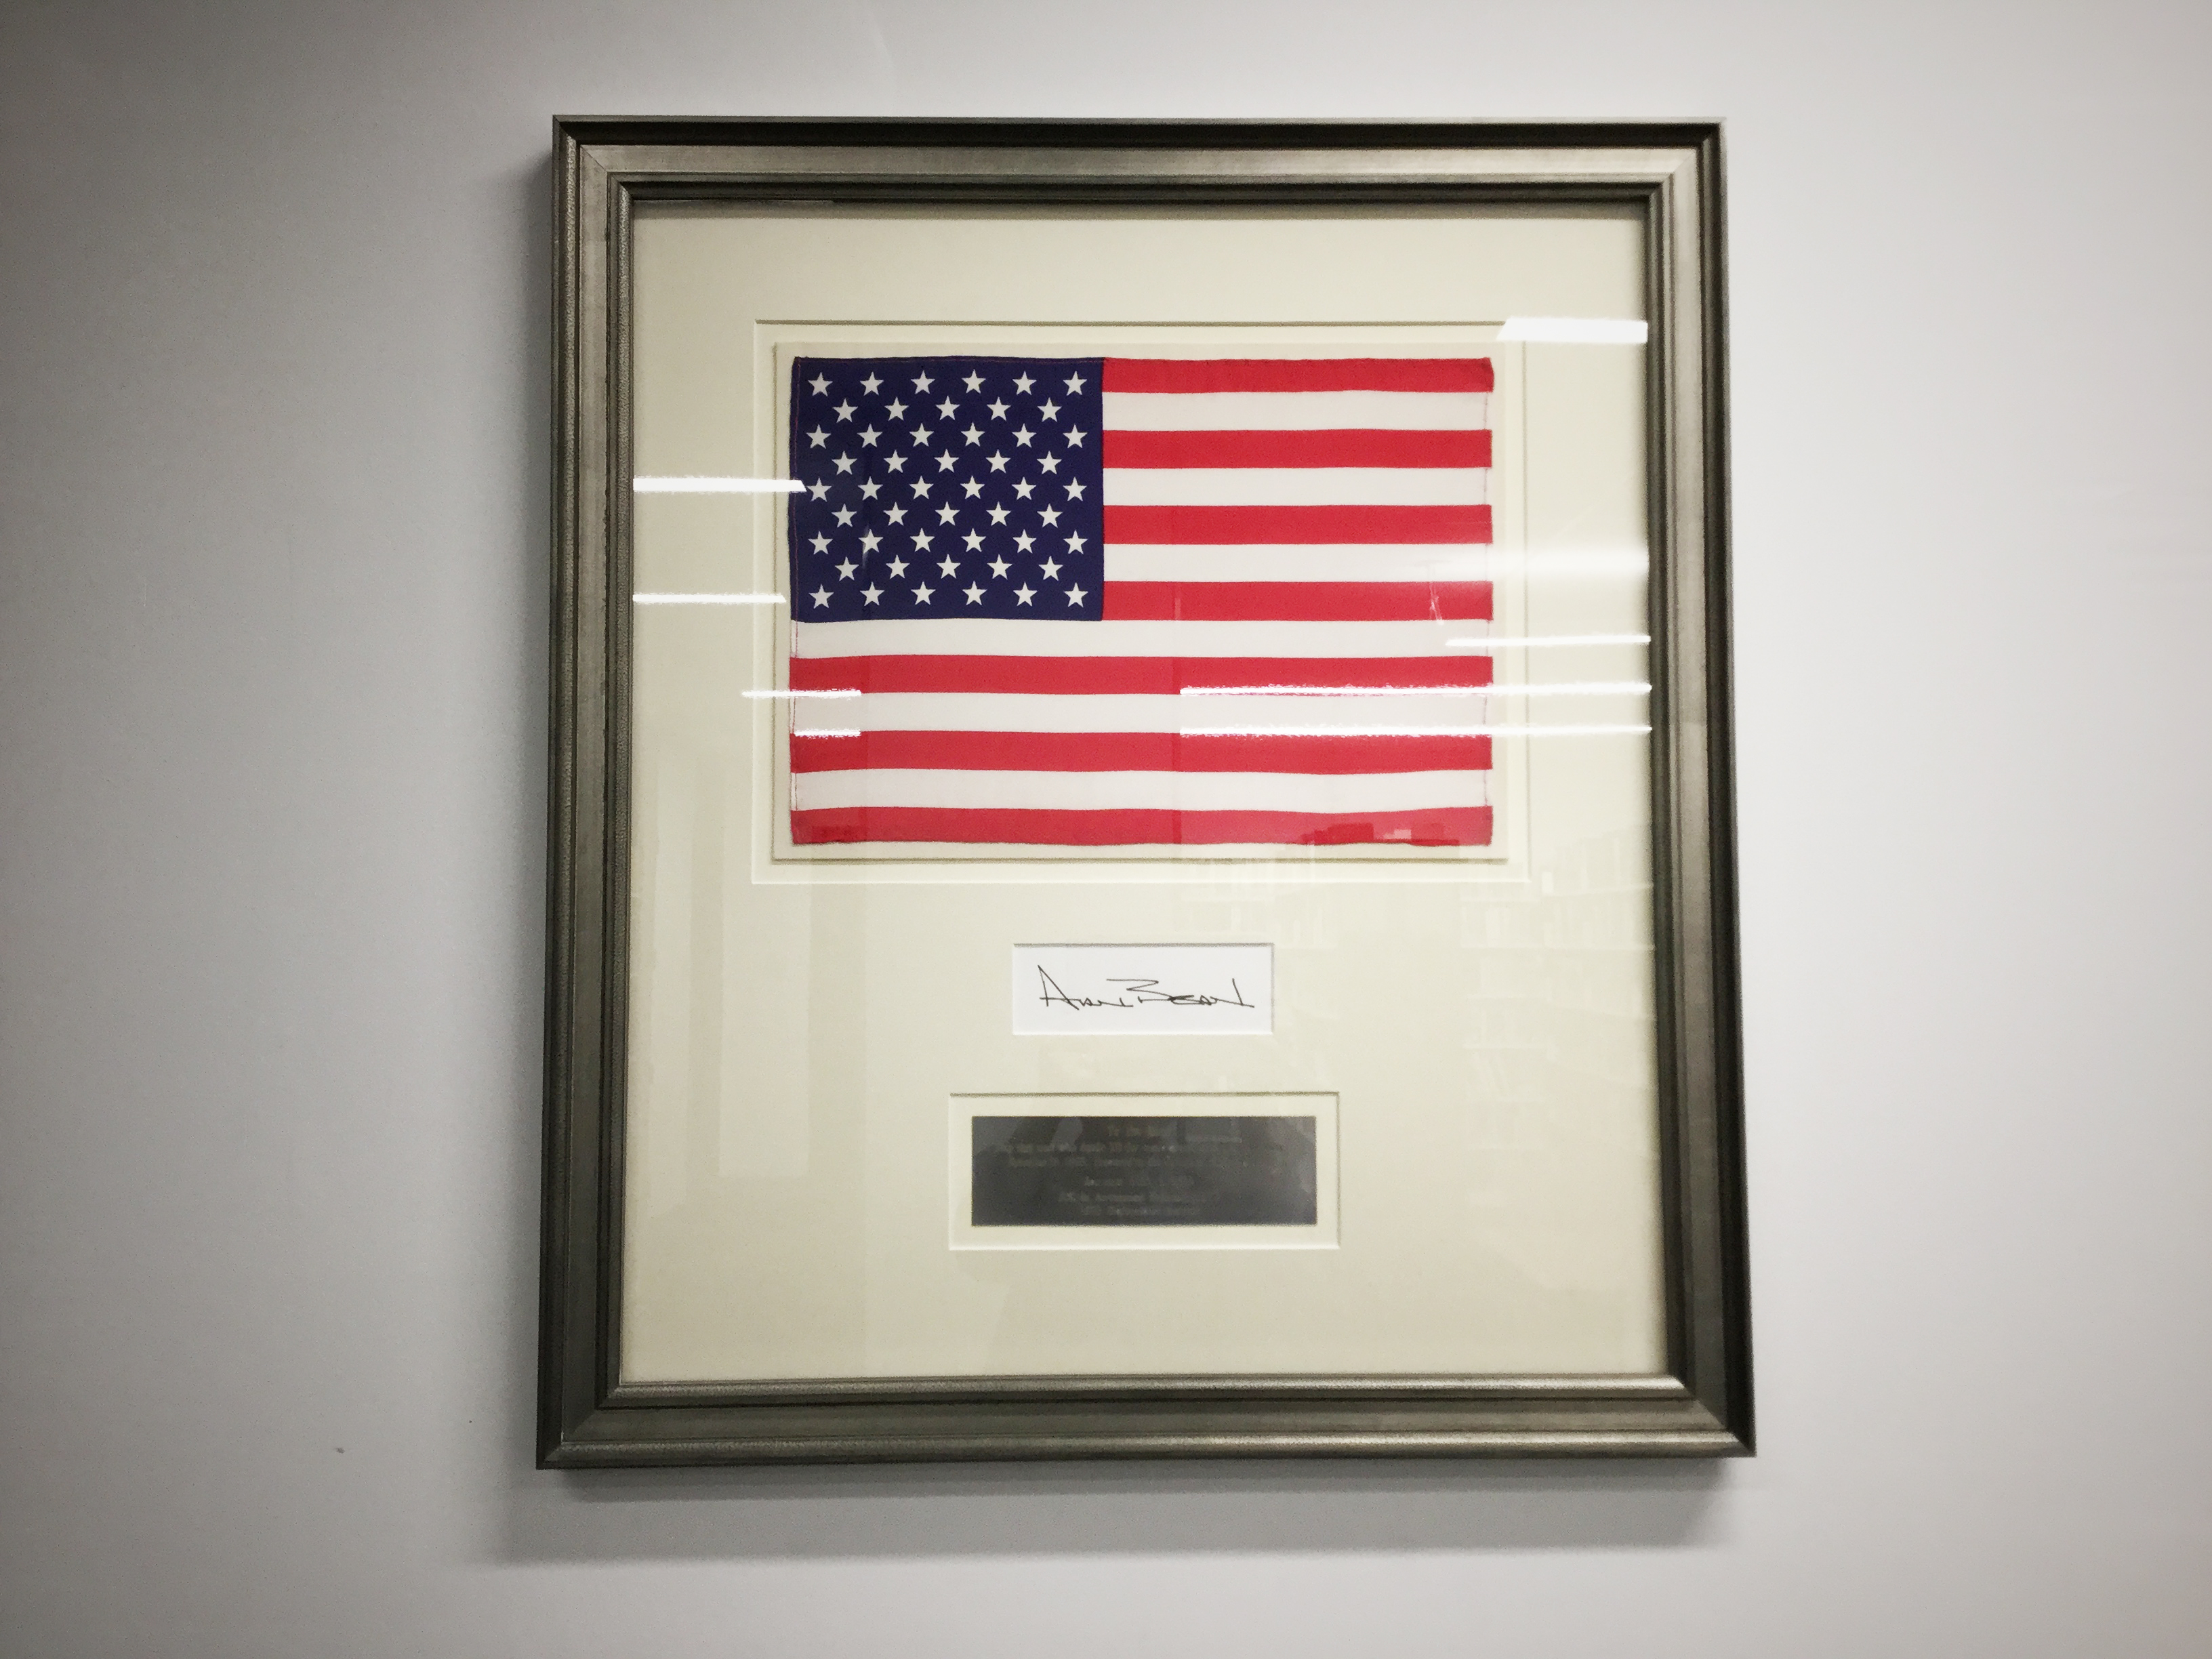 A flag from astronaut Alan Bean's lunar mission.